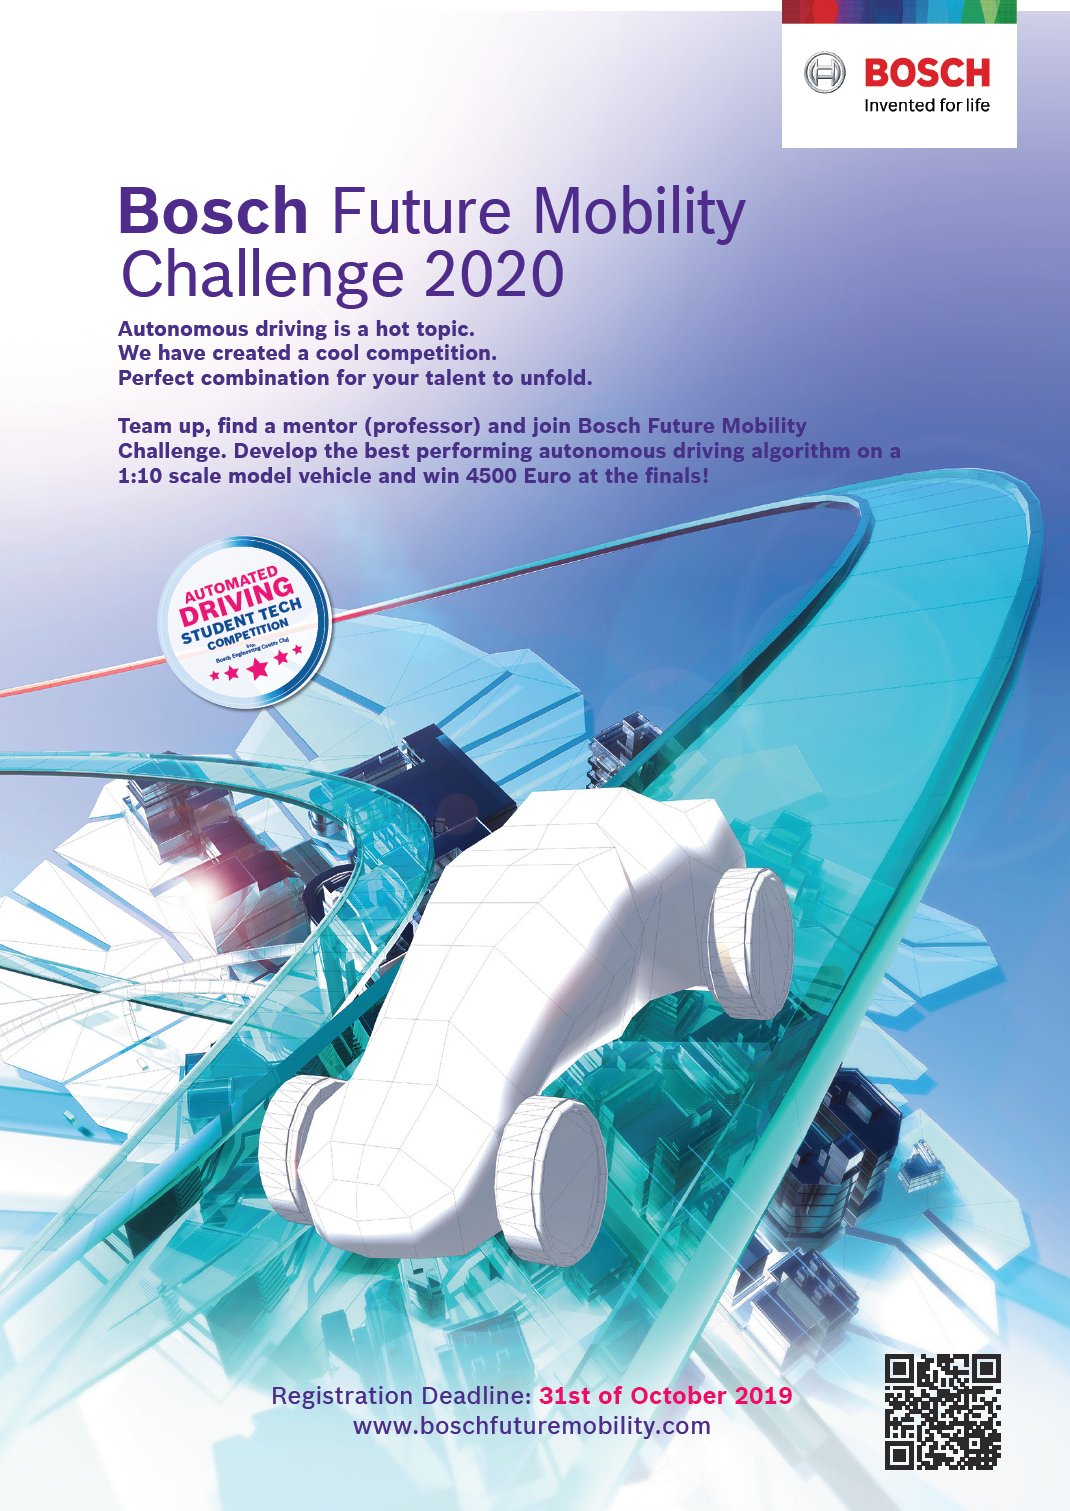 Bosch Future Mobility Challenge 2020